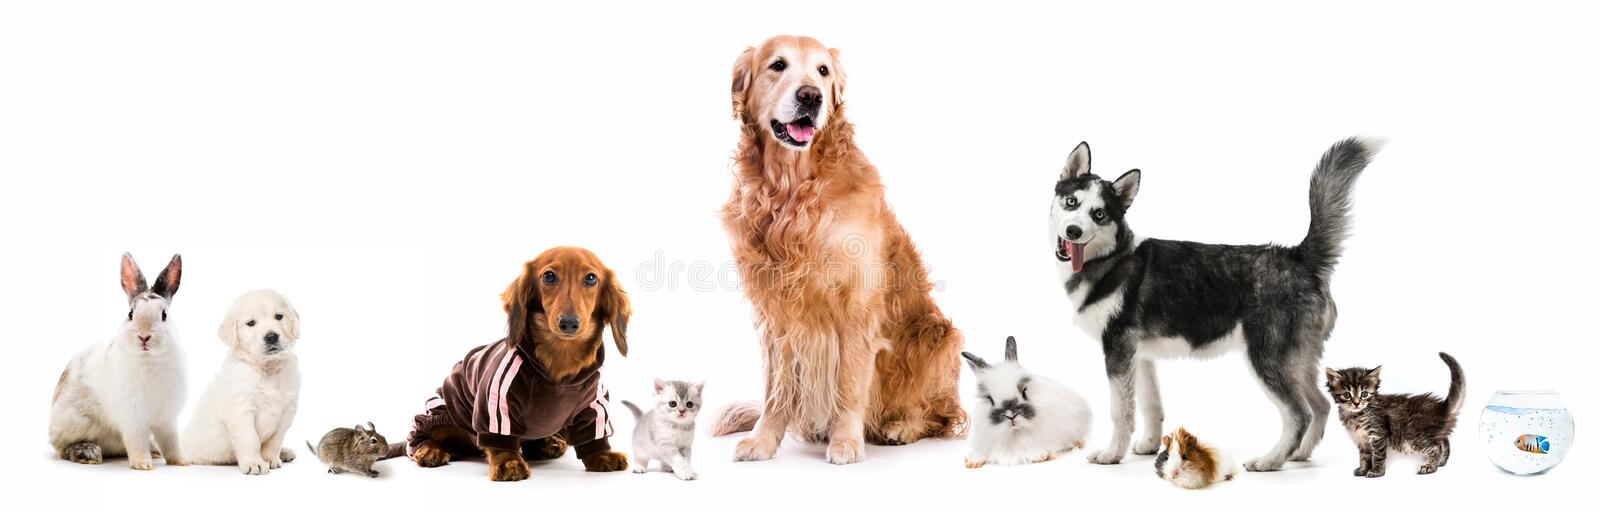 Set of fluffy pets stock image